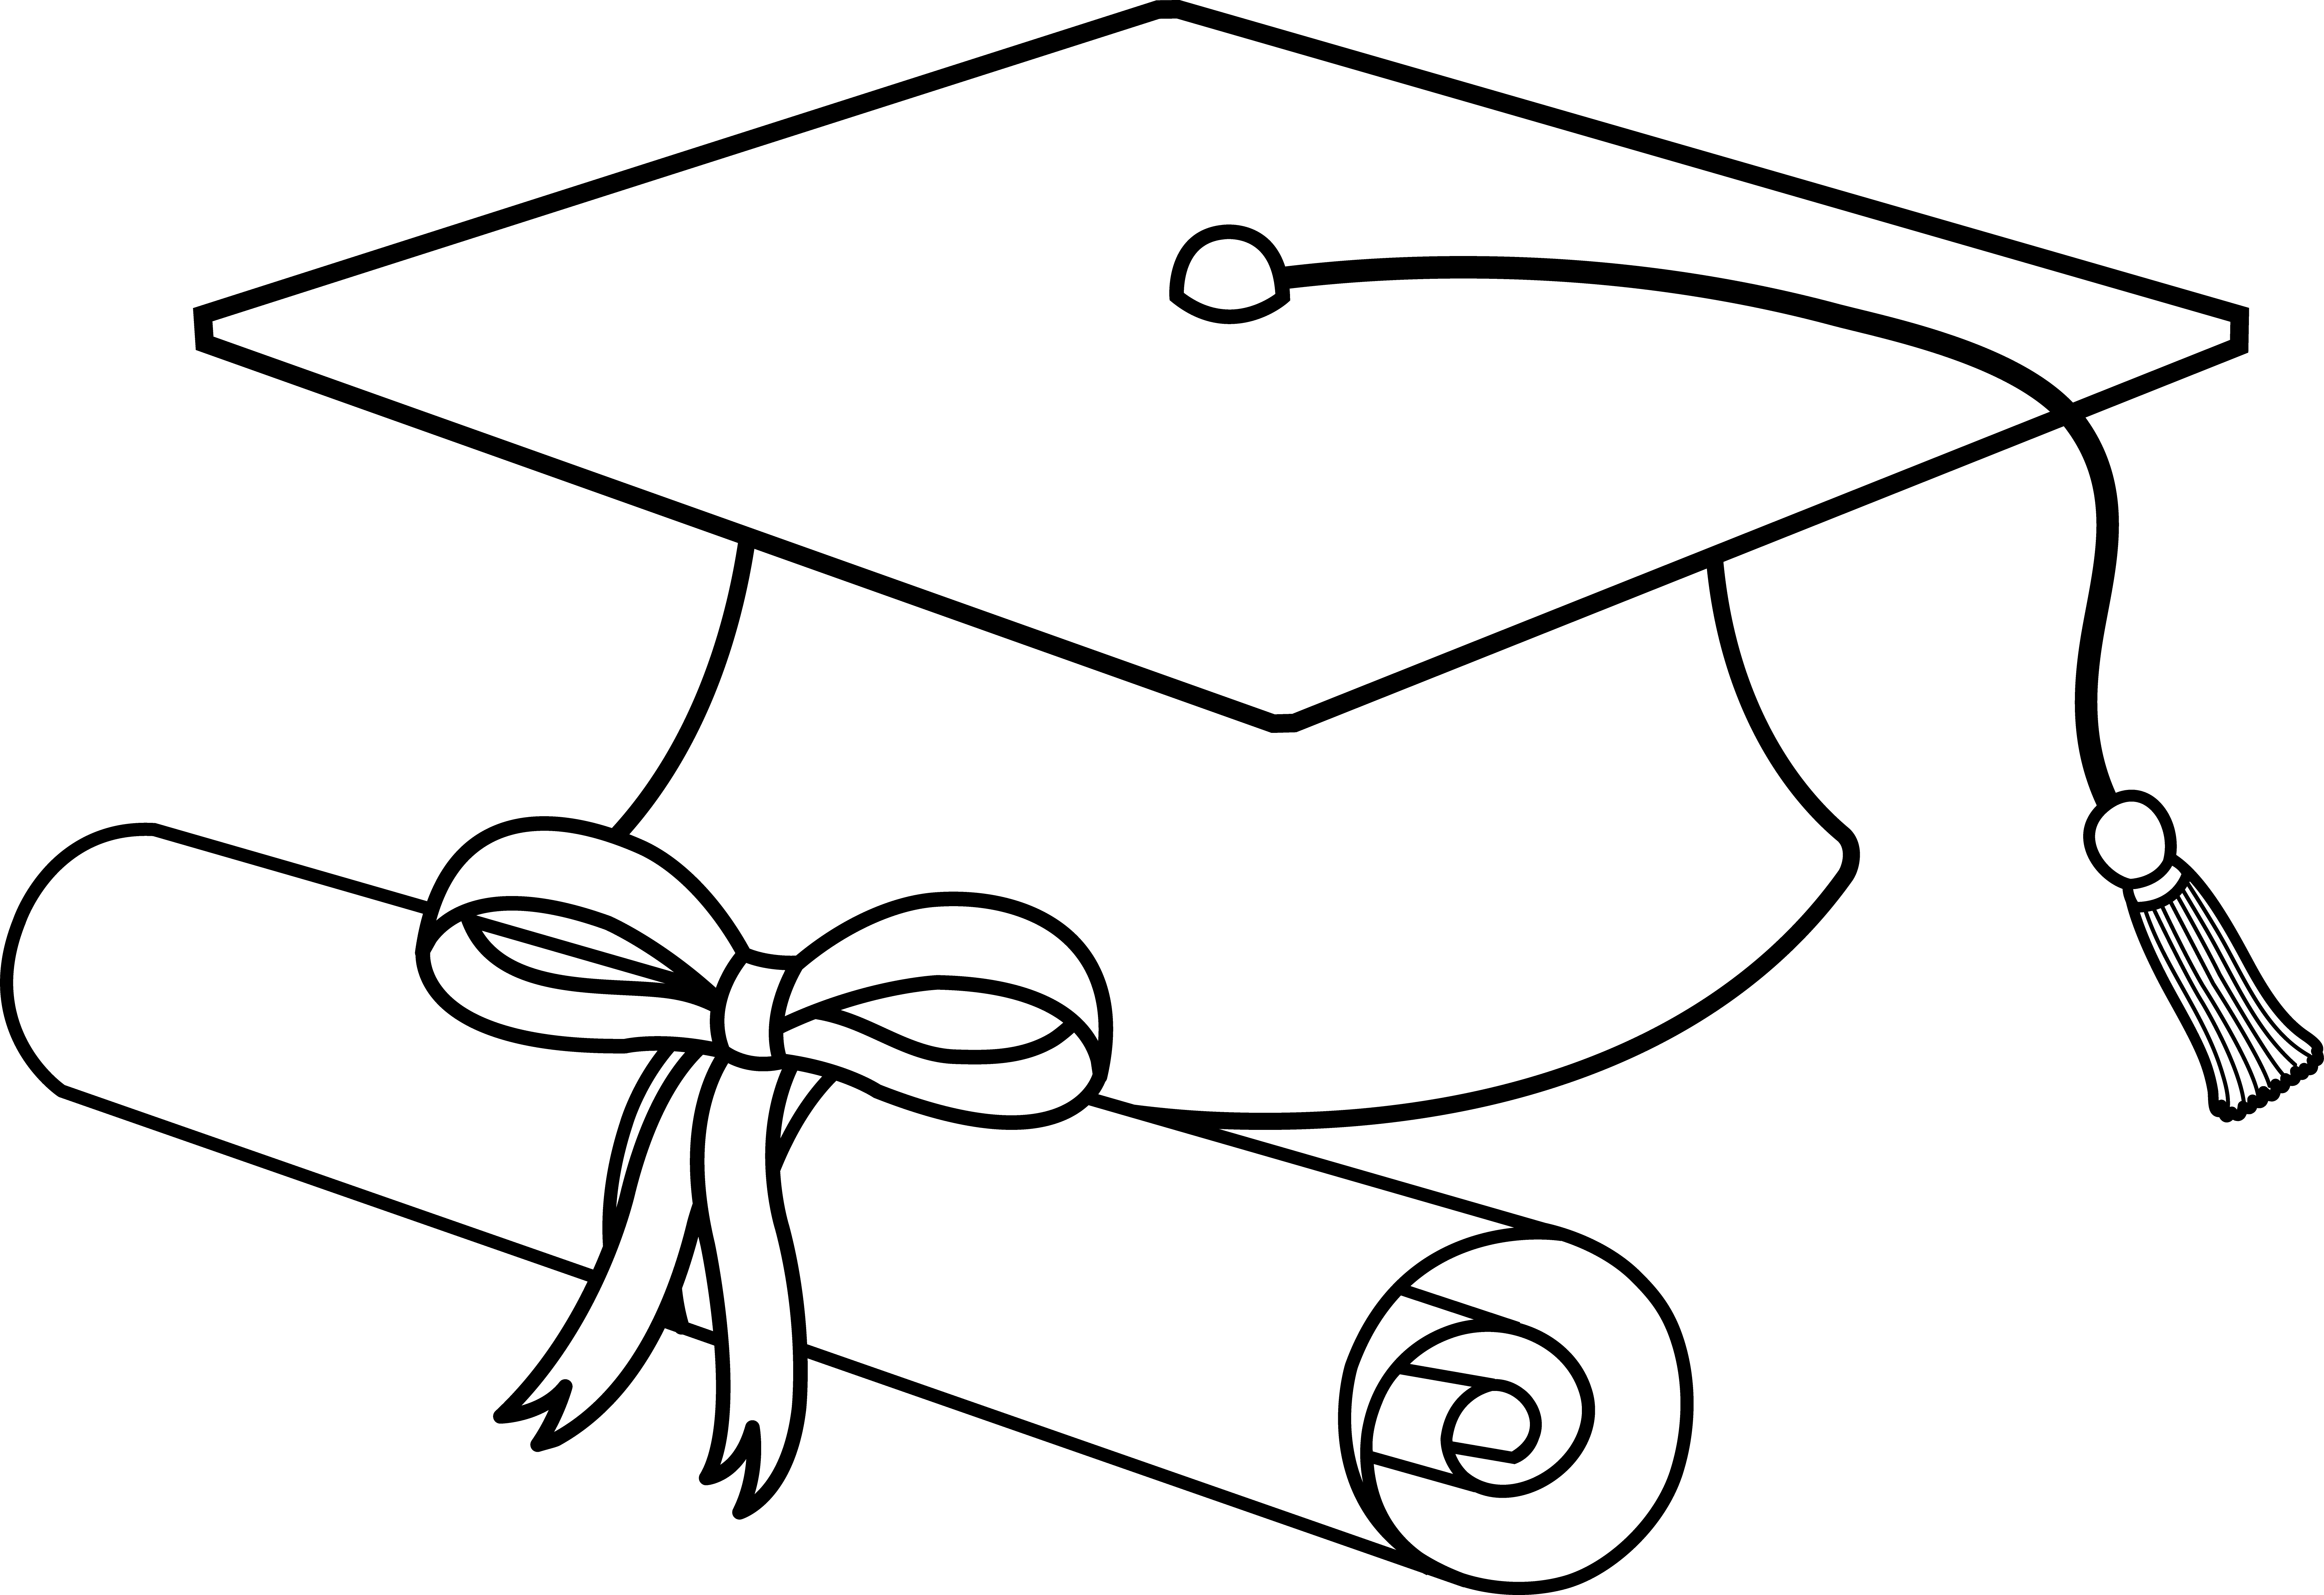 High school graduate clipart image transparent 28+ Collection of Graduating High School Clipart | High quality ... image transparent